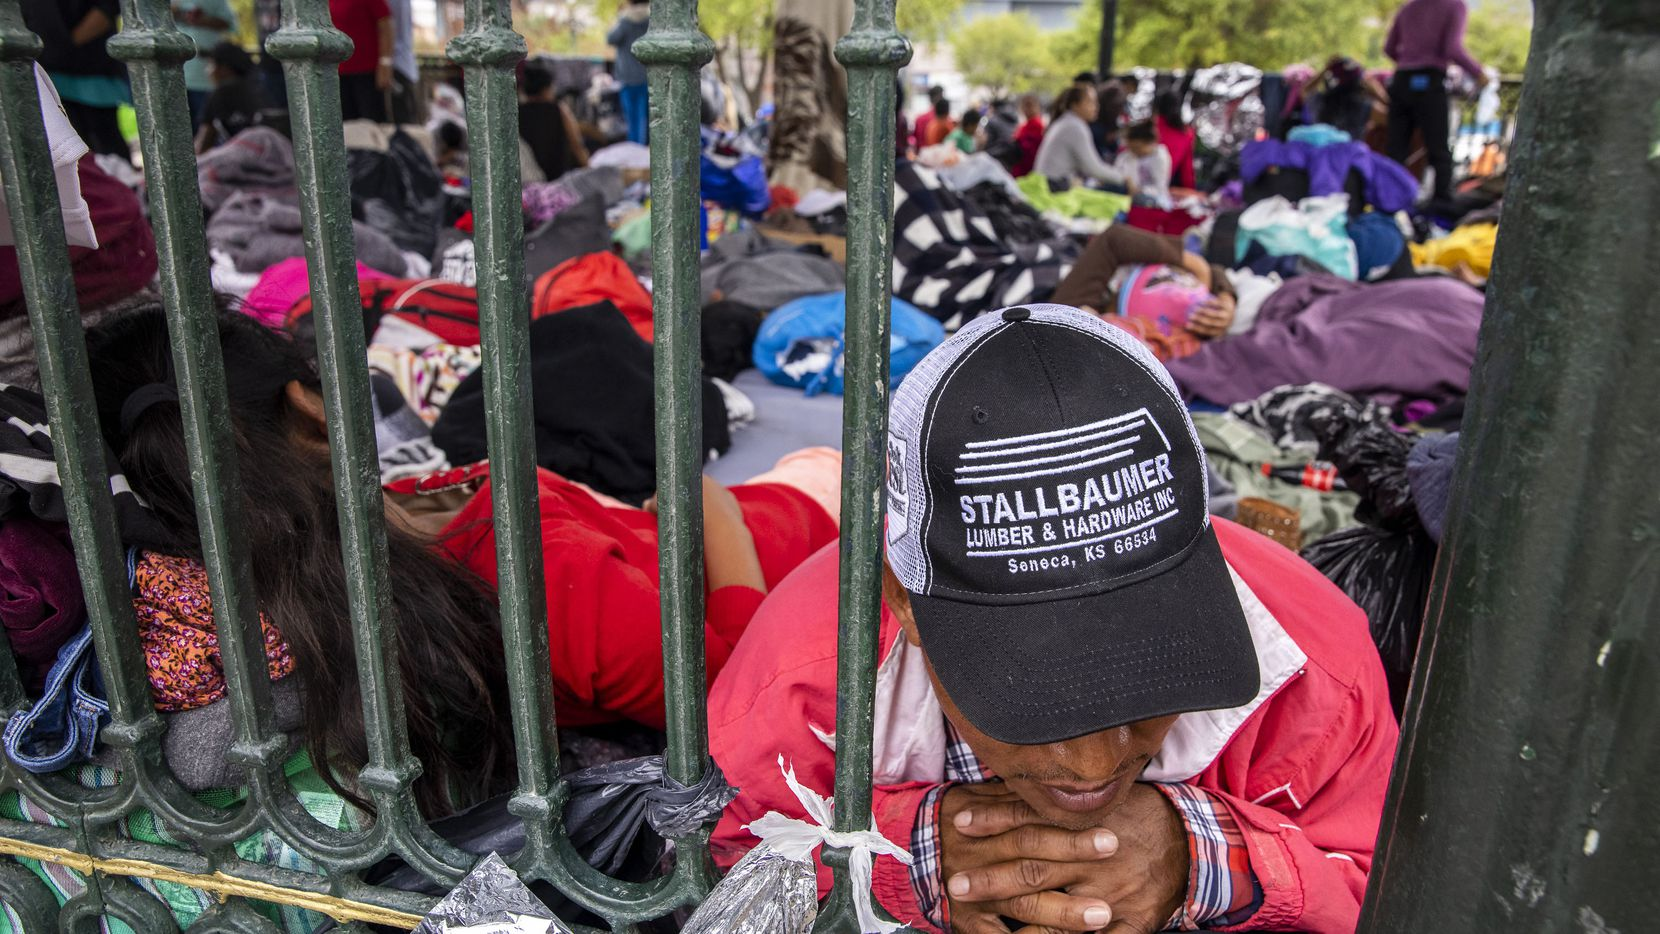 """Laureano Sanchez, a migrant from Guatemala, lays among dozens of other expelled migrants resting in a gazebo in a public square in the Mexican border city of Reynosa on Wednesday, March 31, 2021. He traveled to the U.S. with his teenage daughter only to be expelled back to Reynosa. """"It's so difficult,"""" Sanchez said of being stranded in Reynosa. """"But we know nothing is difficult for God, and there's nothing that's impossible for him."""""""